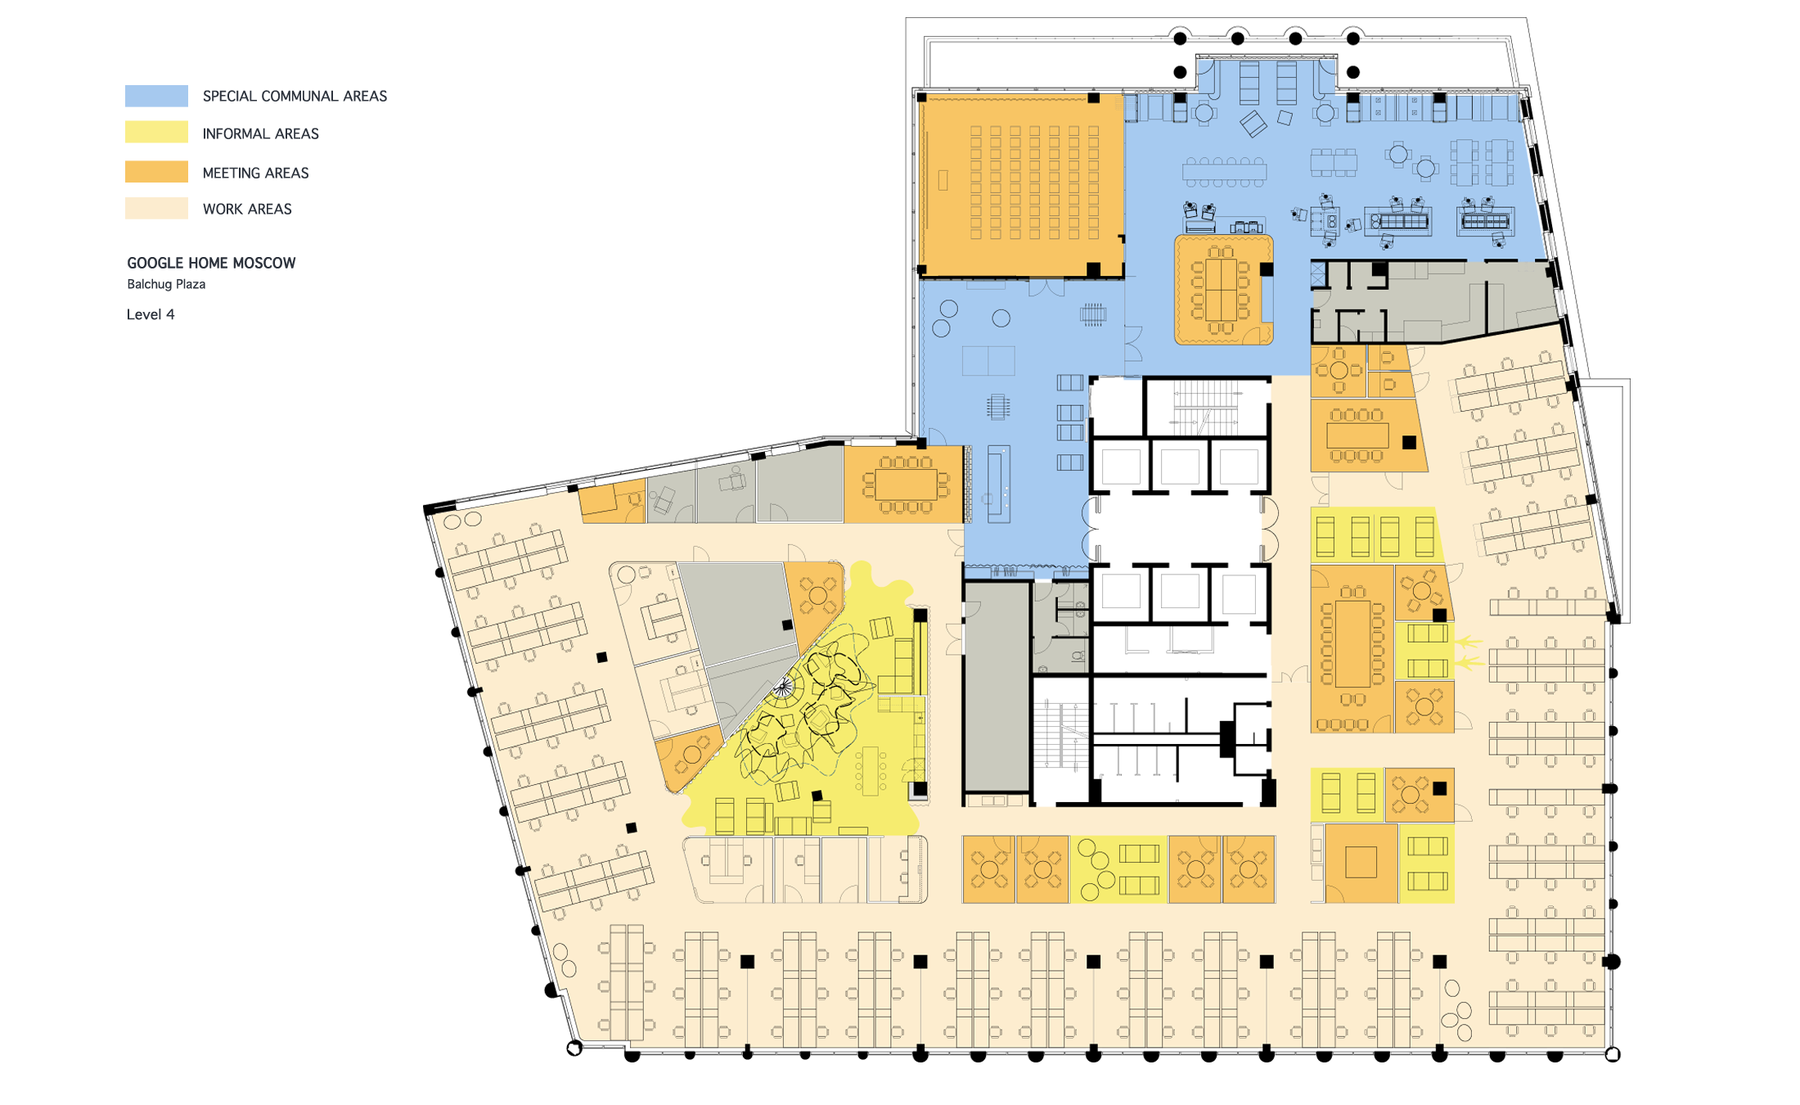 Google Floor Plan On Floor Plan Level 4 Plan Full Jpg 1800 1105